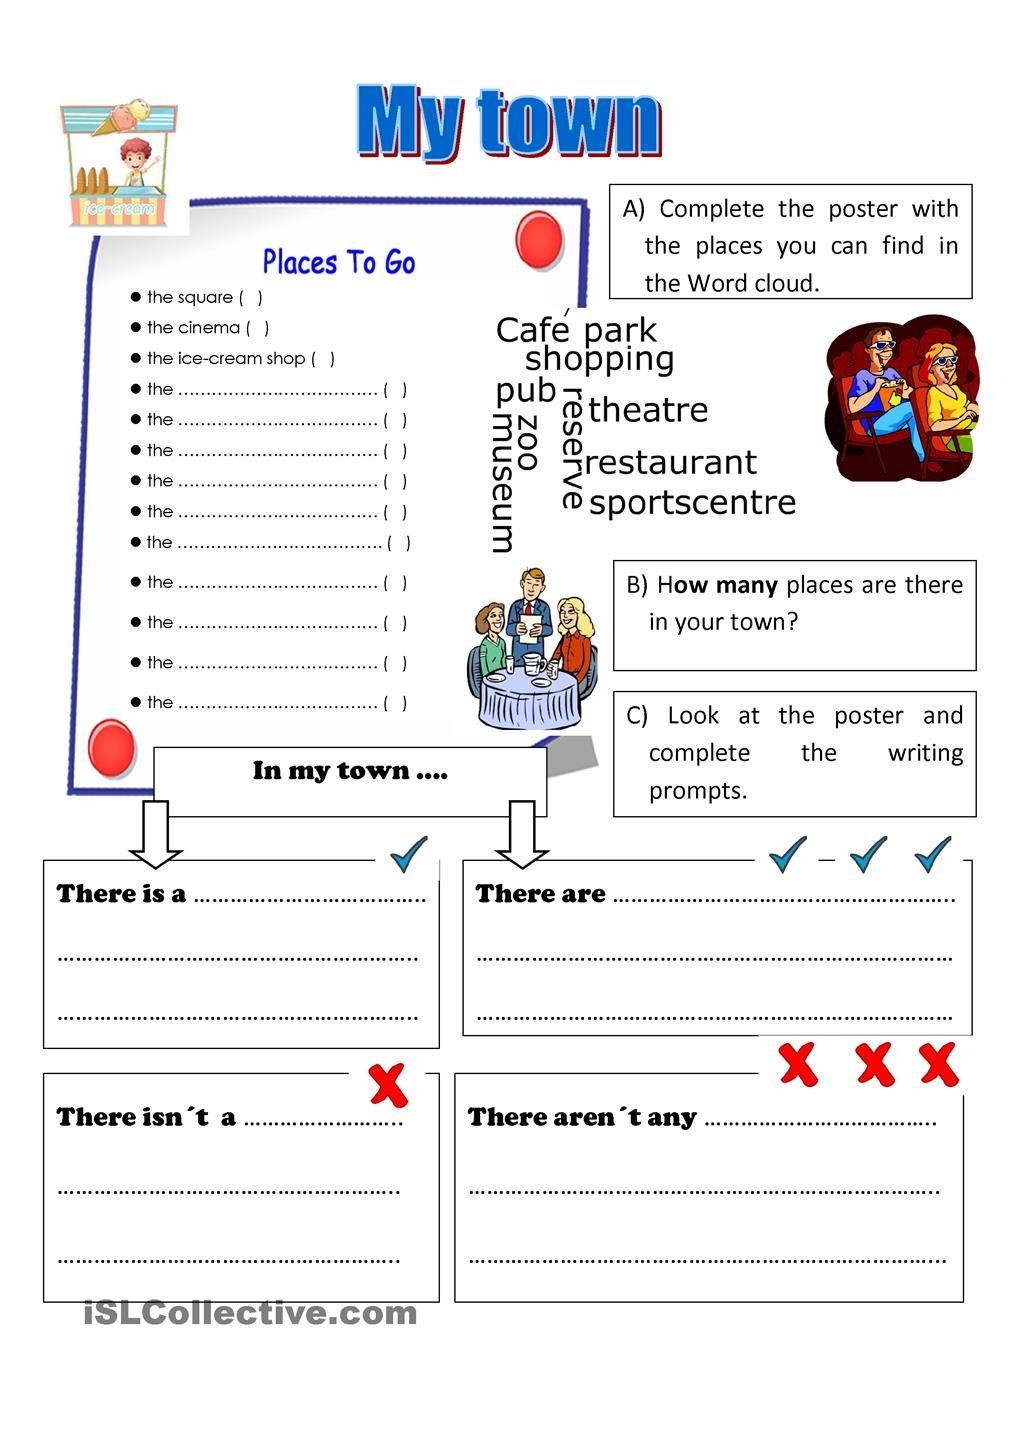 Workbooks teach english to spanish speakers worksheets : My town | English vocabulary | Pinterest | English, Worksheets and ...